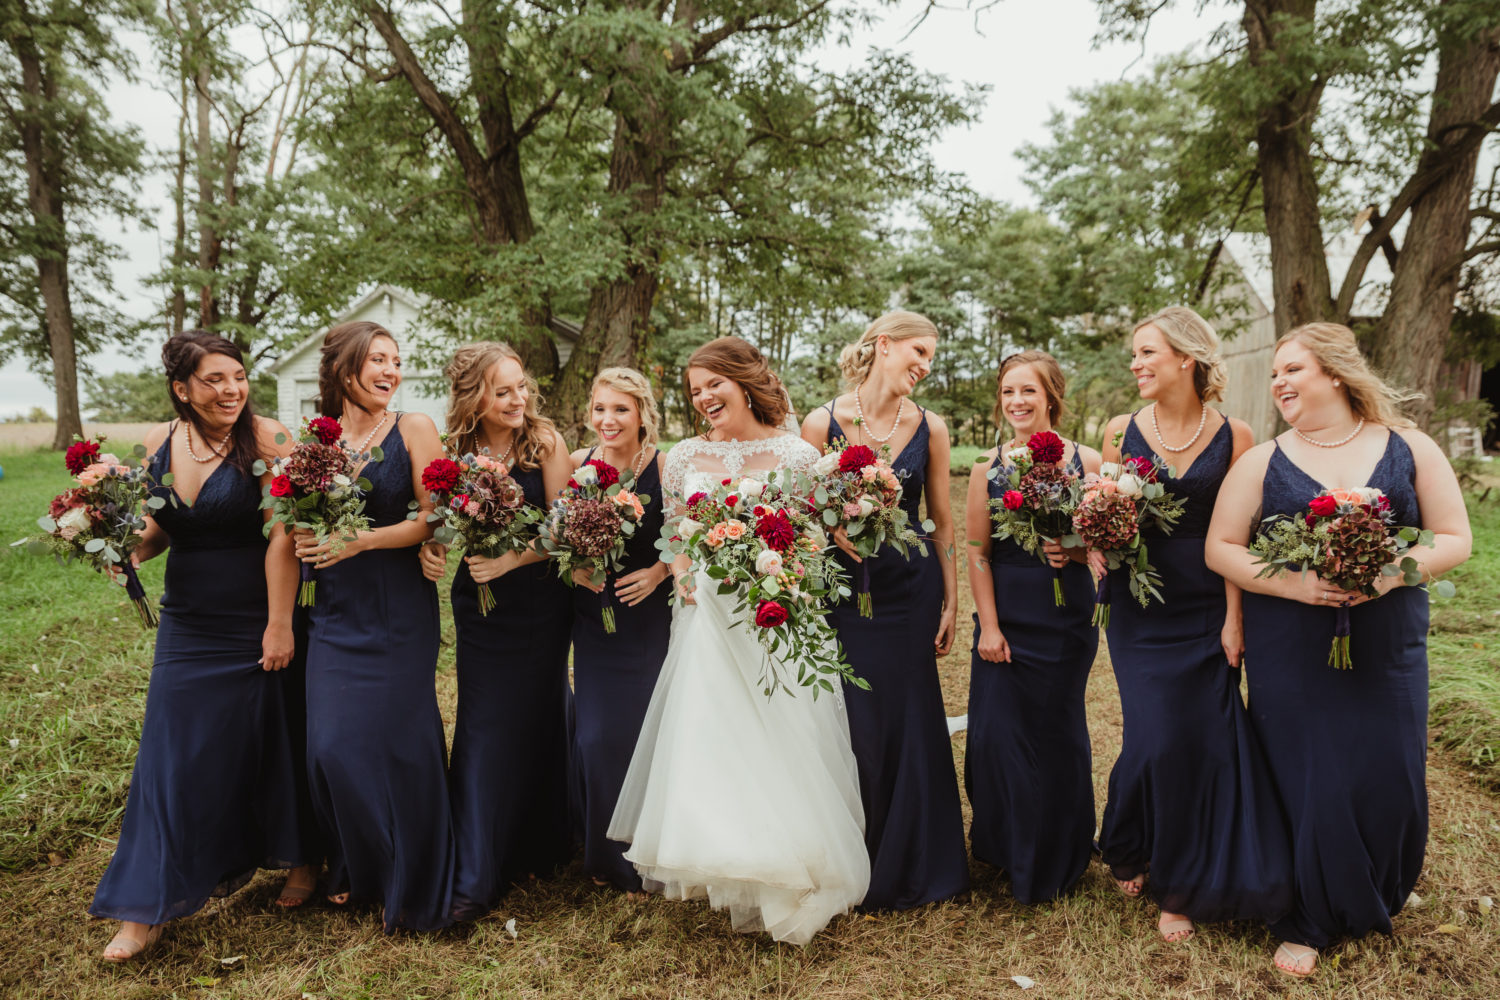 Amanda Steffke Photography - Bridesmaids